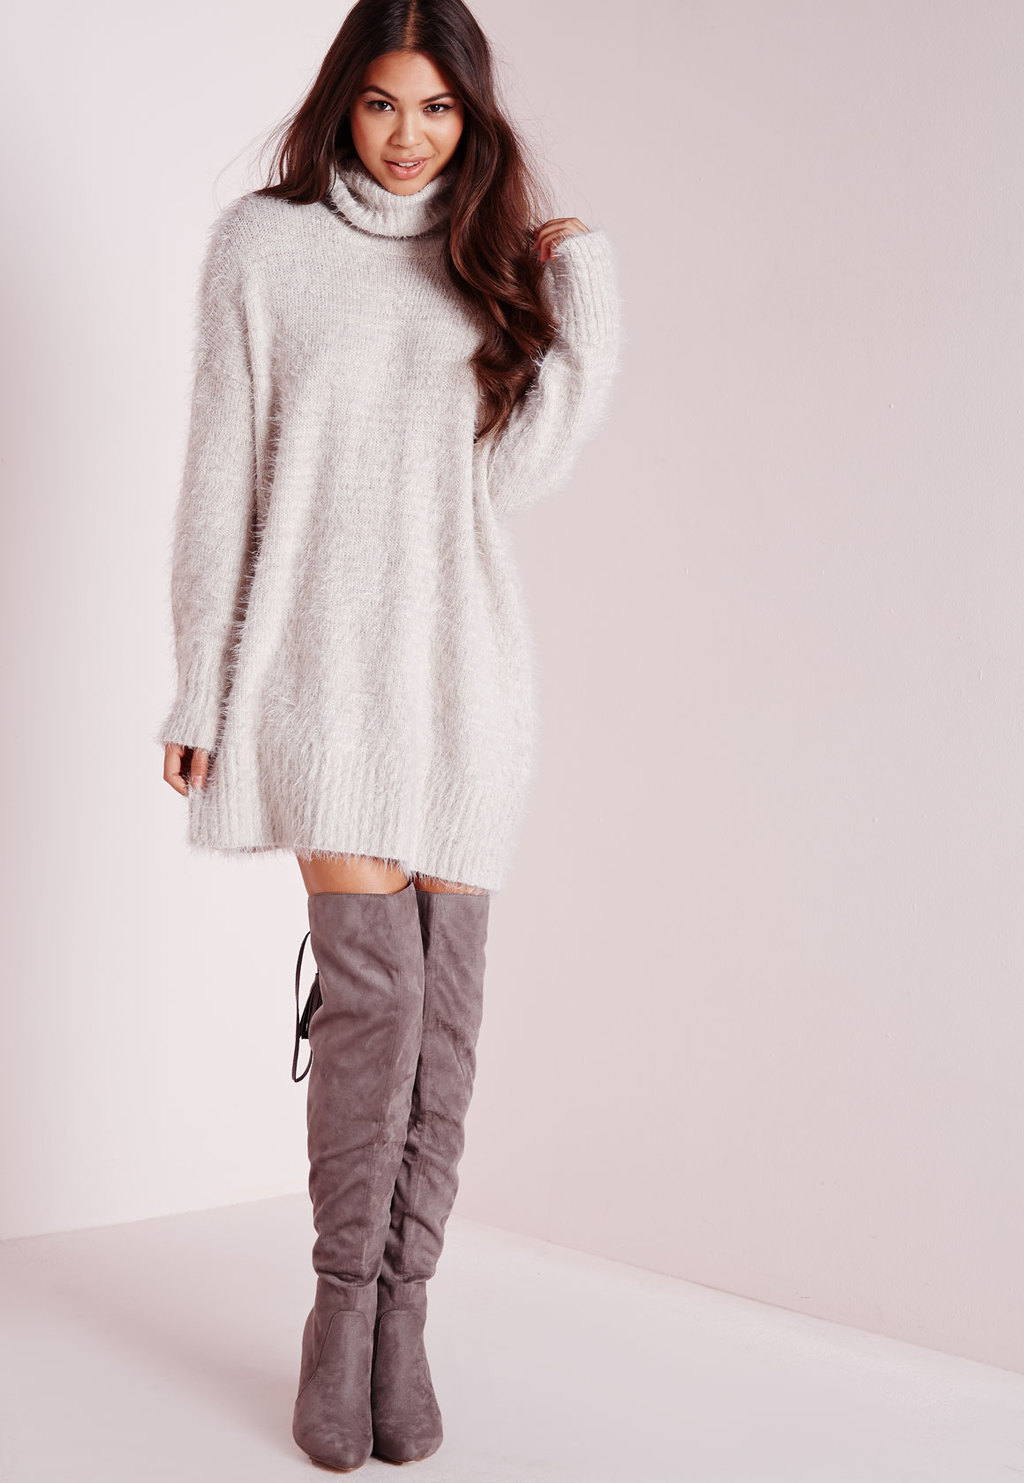 Tall Fluffy Roll Neck Jumper Dress Grey, Grey - style: jumper dress; length: mid thigh; fit: loose; pattern: plain; neckline: roll neck; predominant colour: light grey; occasions: casual, creative work; fibres: polyester/polyamide - mix; sleeve length: long sleeve; sleeve style: standard; texture group: knits/crochet; pattern type: knitted - other; season: a/w 2015; wardrobe: basic